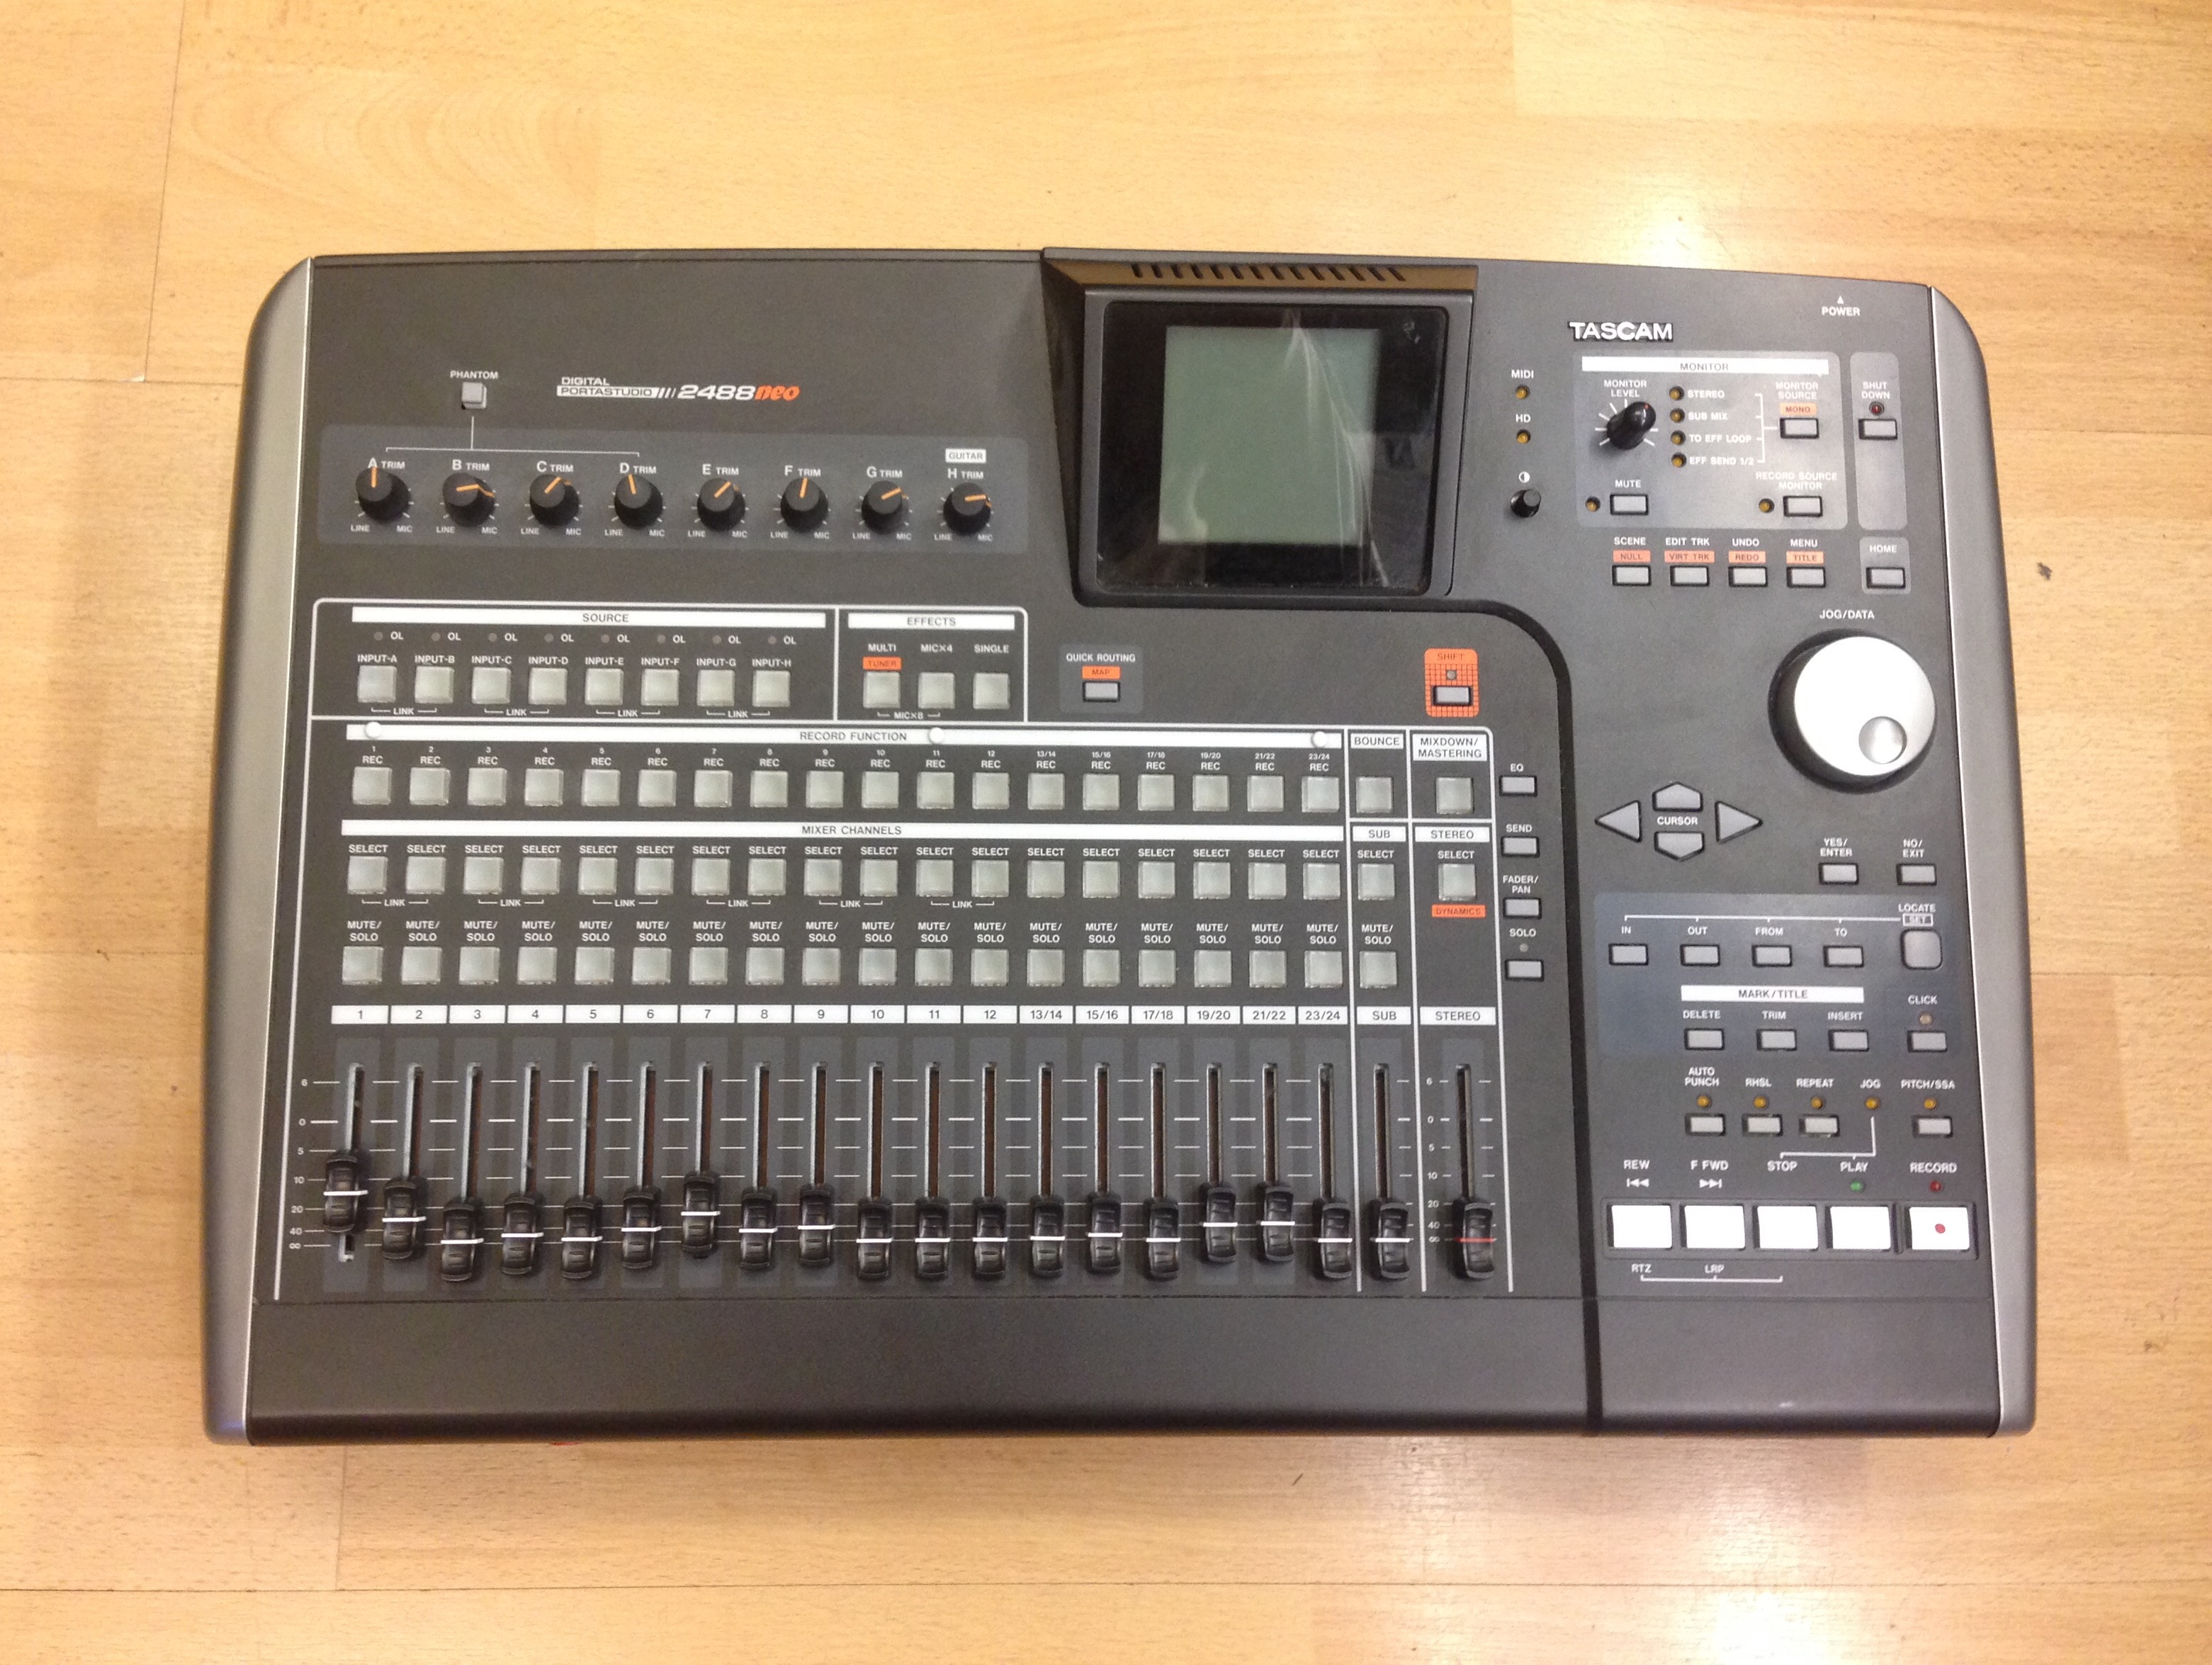 tascam 2488 neo for sale at x electrical rh xelectrical com Tascam Digital Portastudio 2488 Tascam 2488 Tutorial